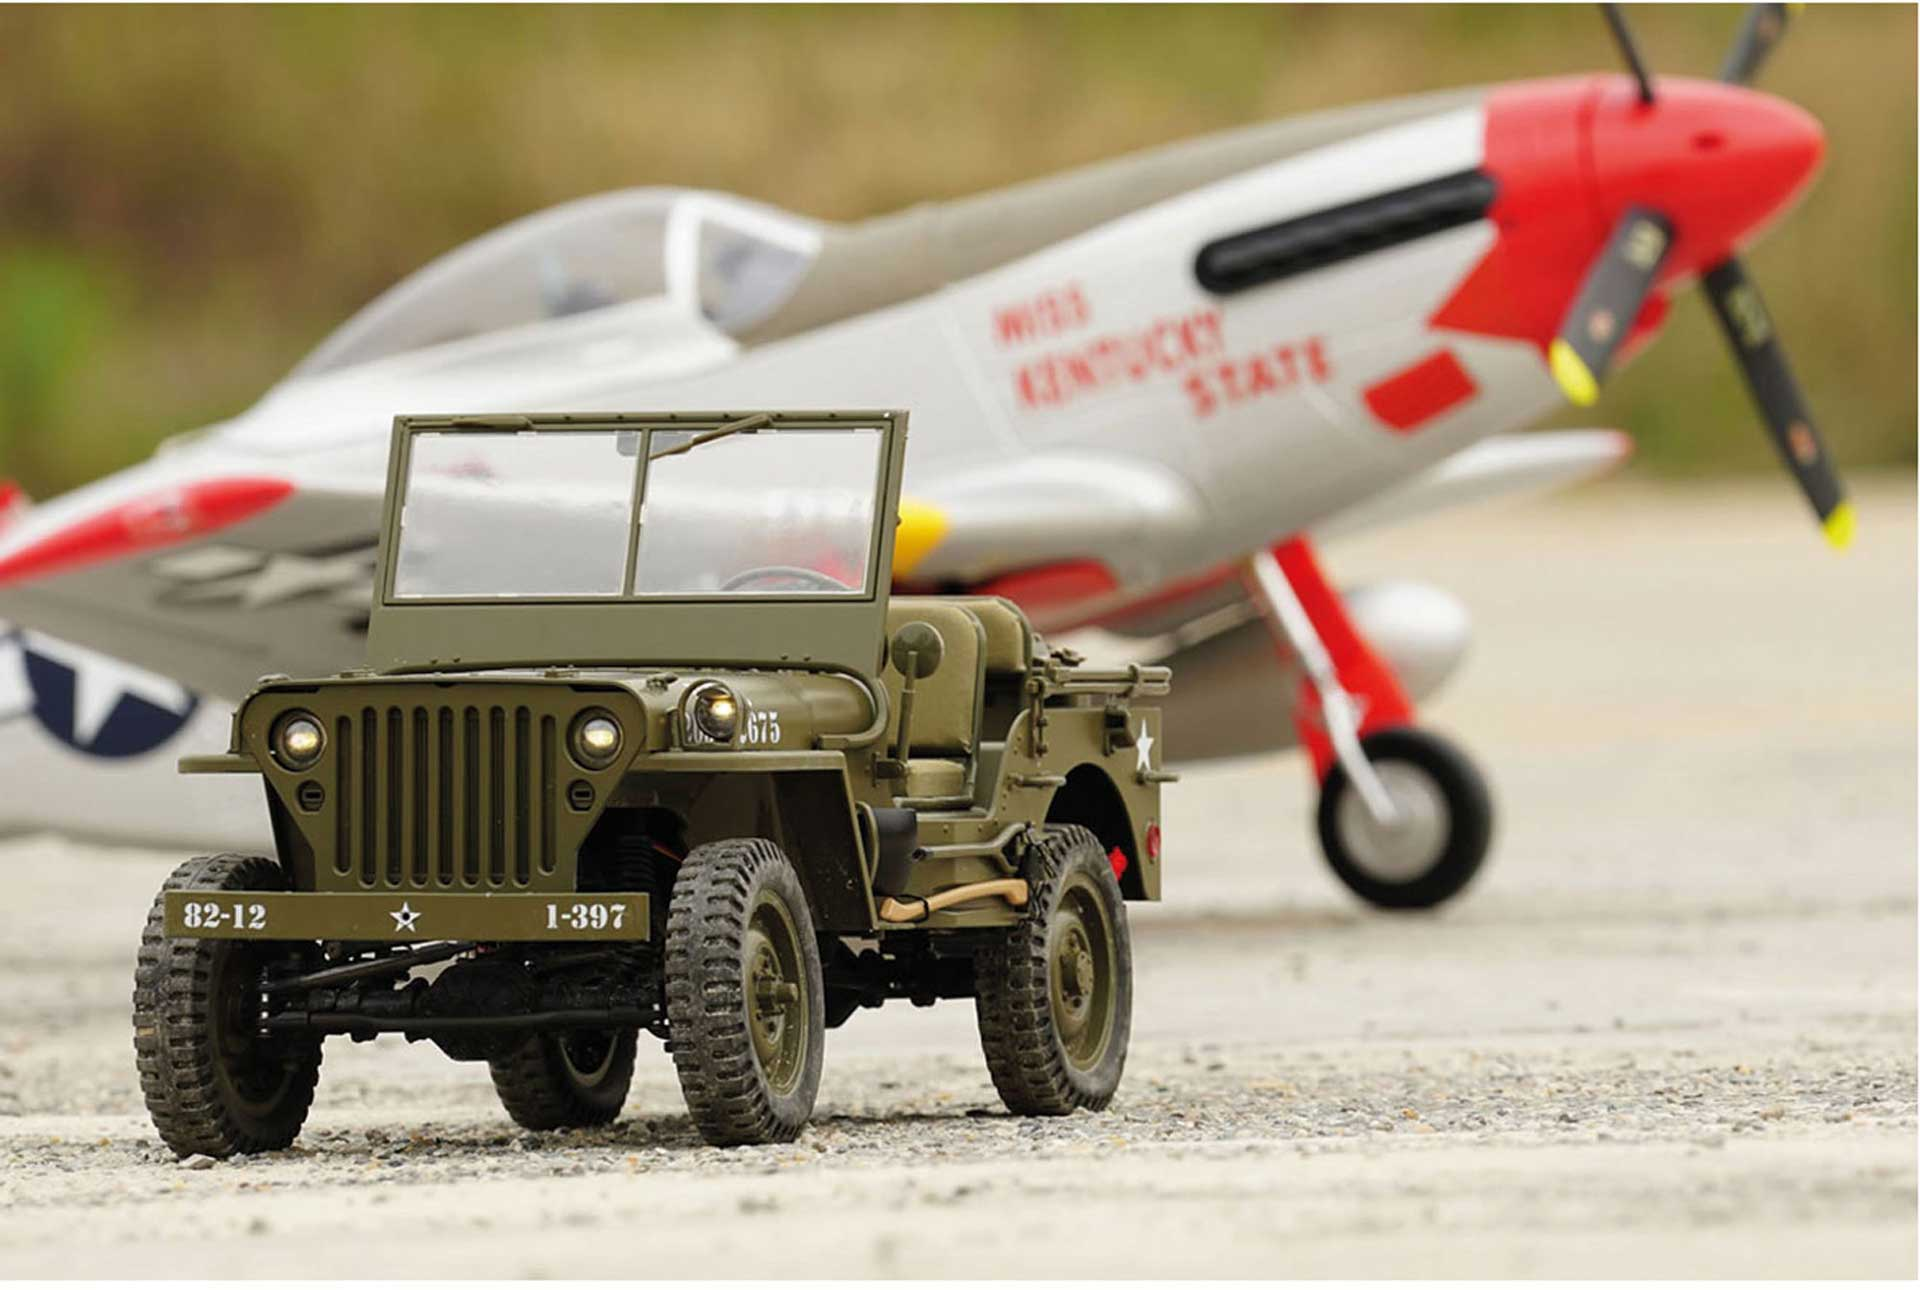 ROC HOBBY 1941 MB Scaler 1:6 4WD Crawler RTR 2,4GHz, mit Beleuchtung